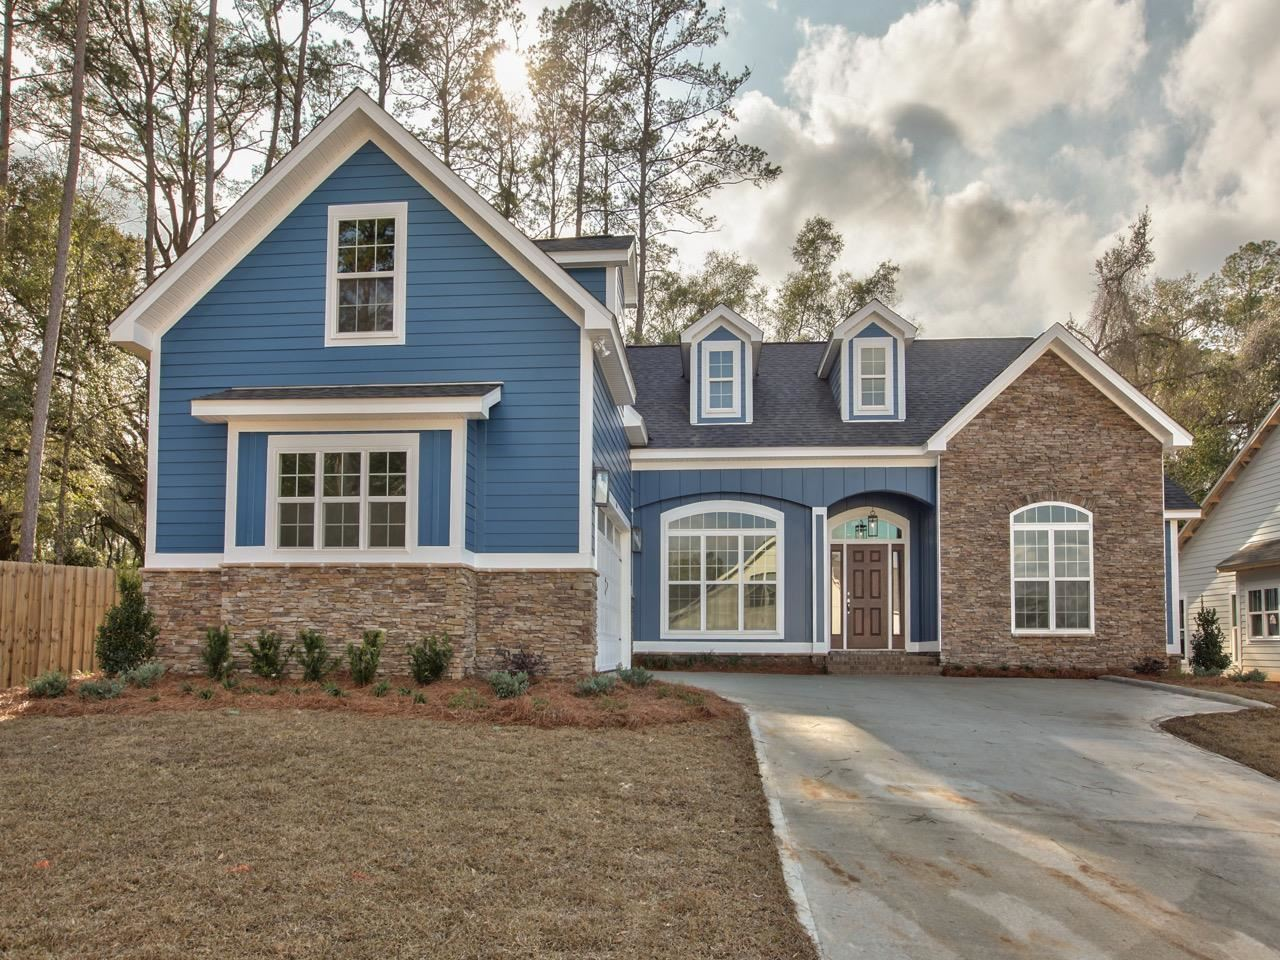 Photo of xxxx Knotted Pine Drive, TALLAHASSEE, FL 32312 (MLS # 337392)